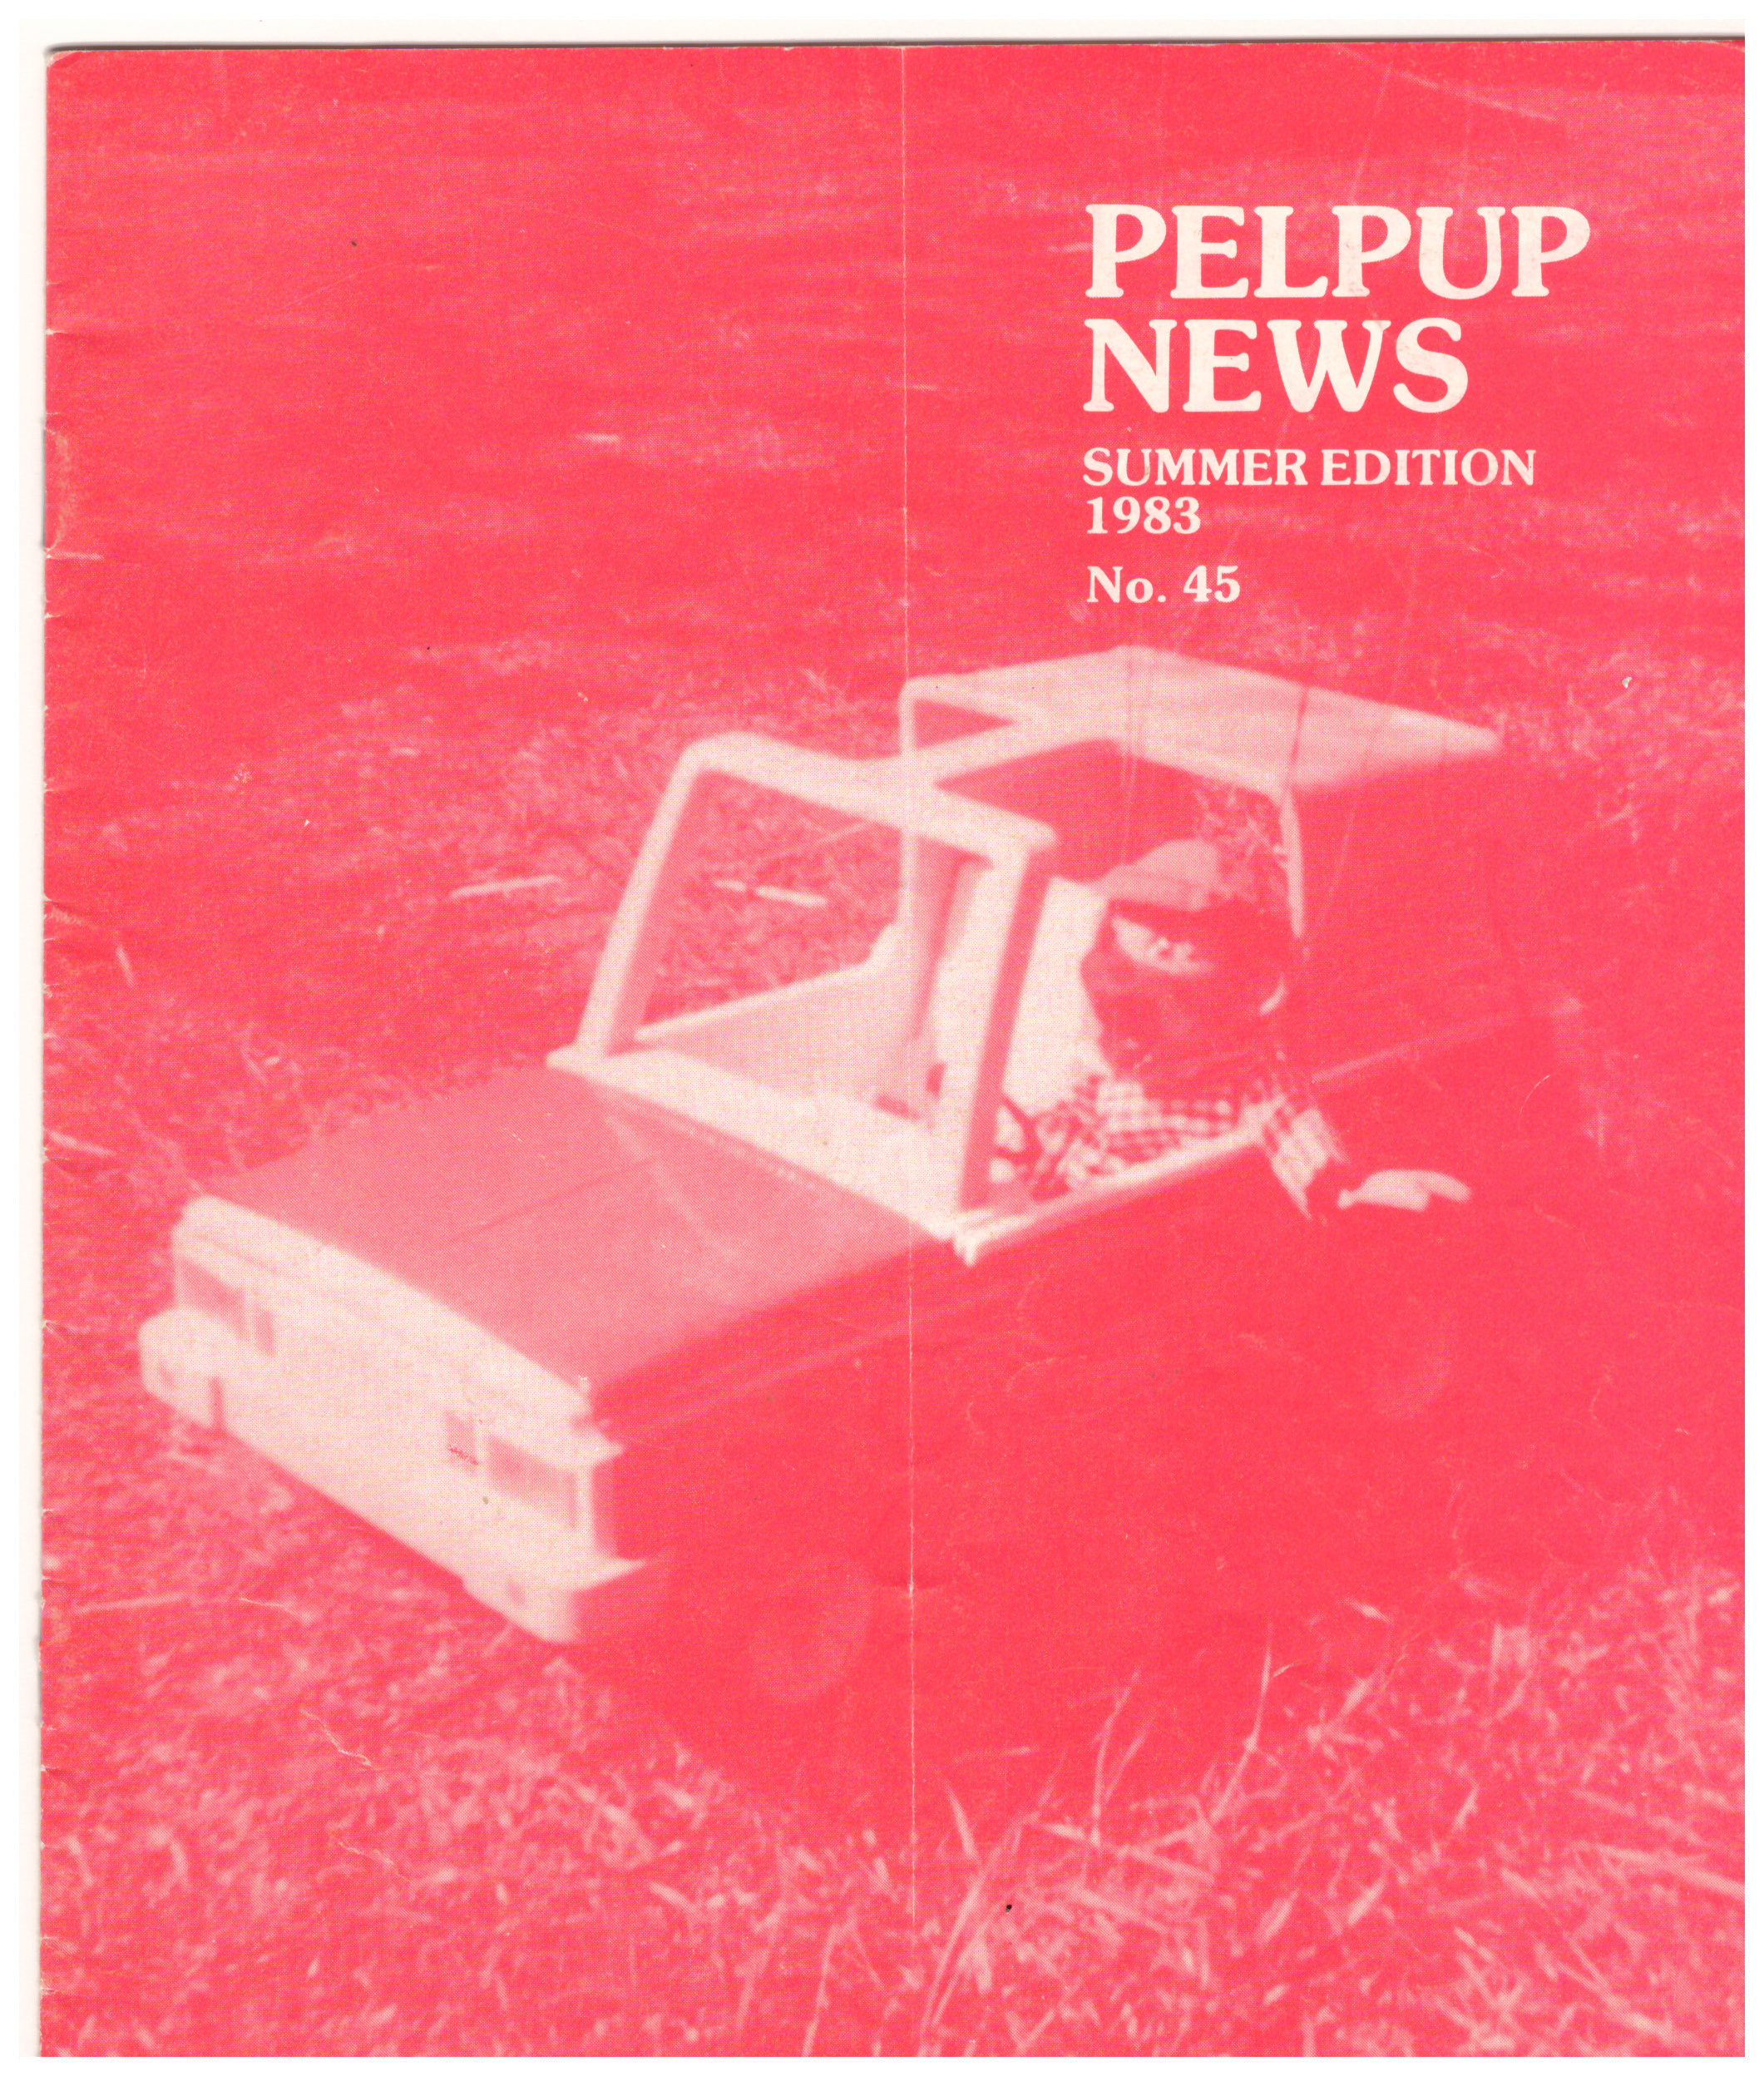 Summer Edition 1983 - Number 45